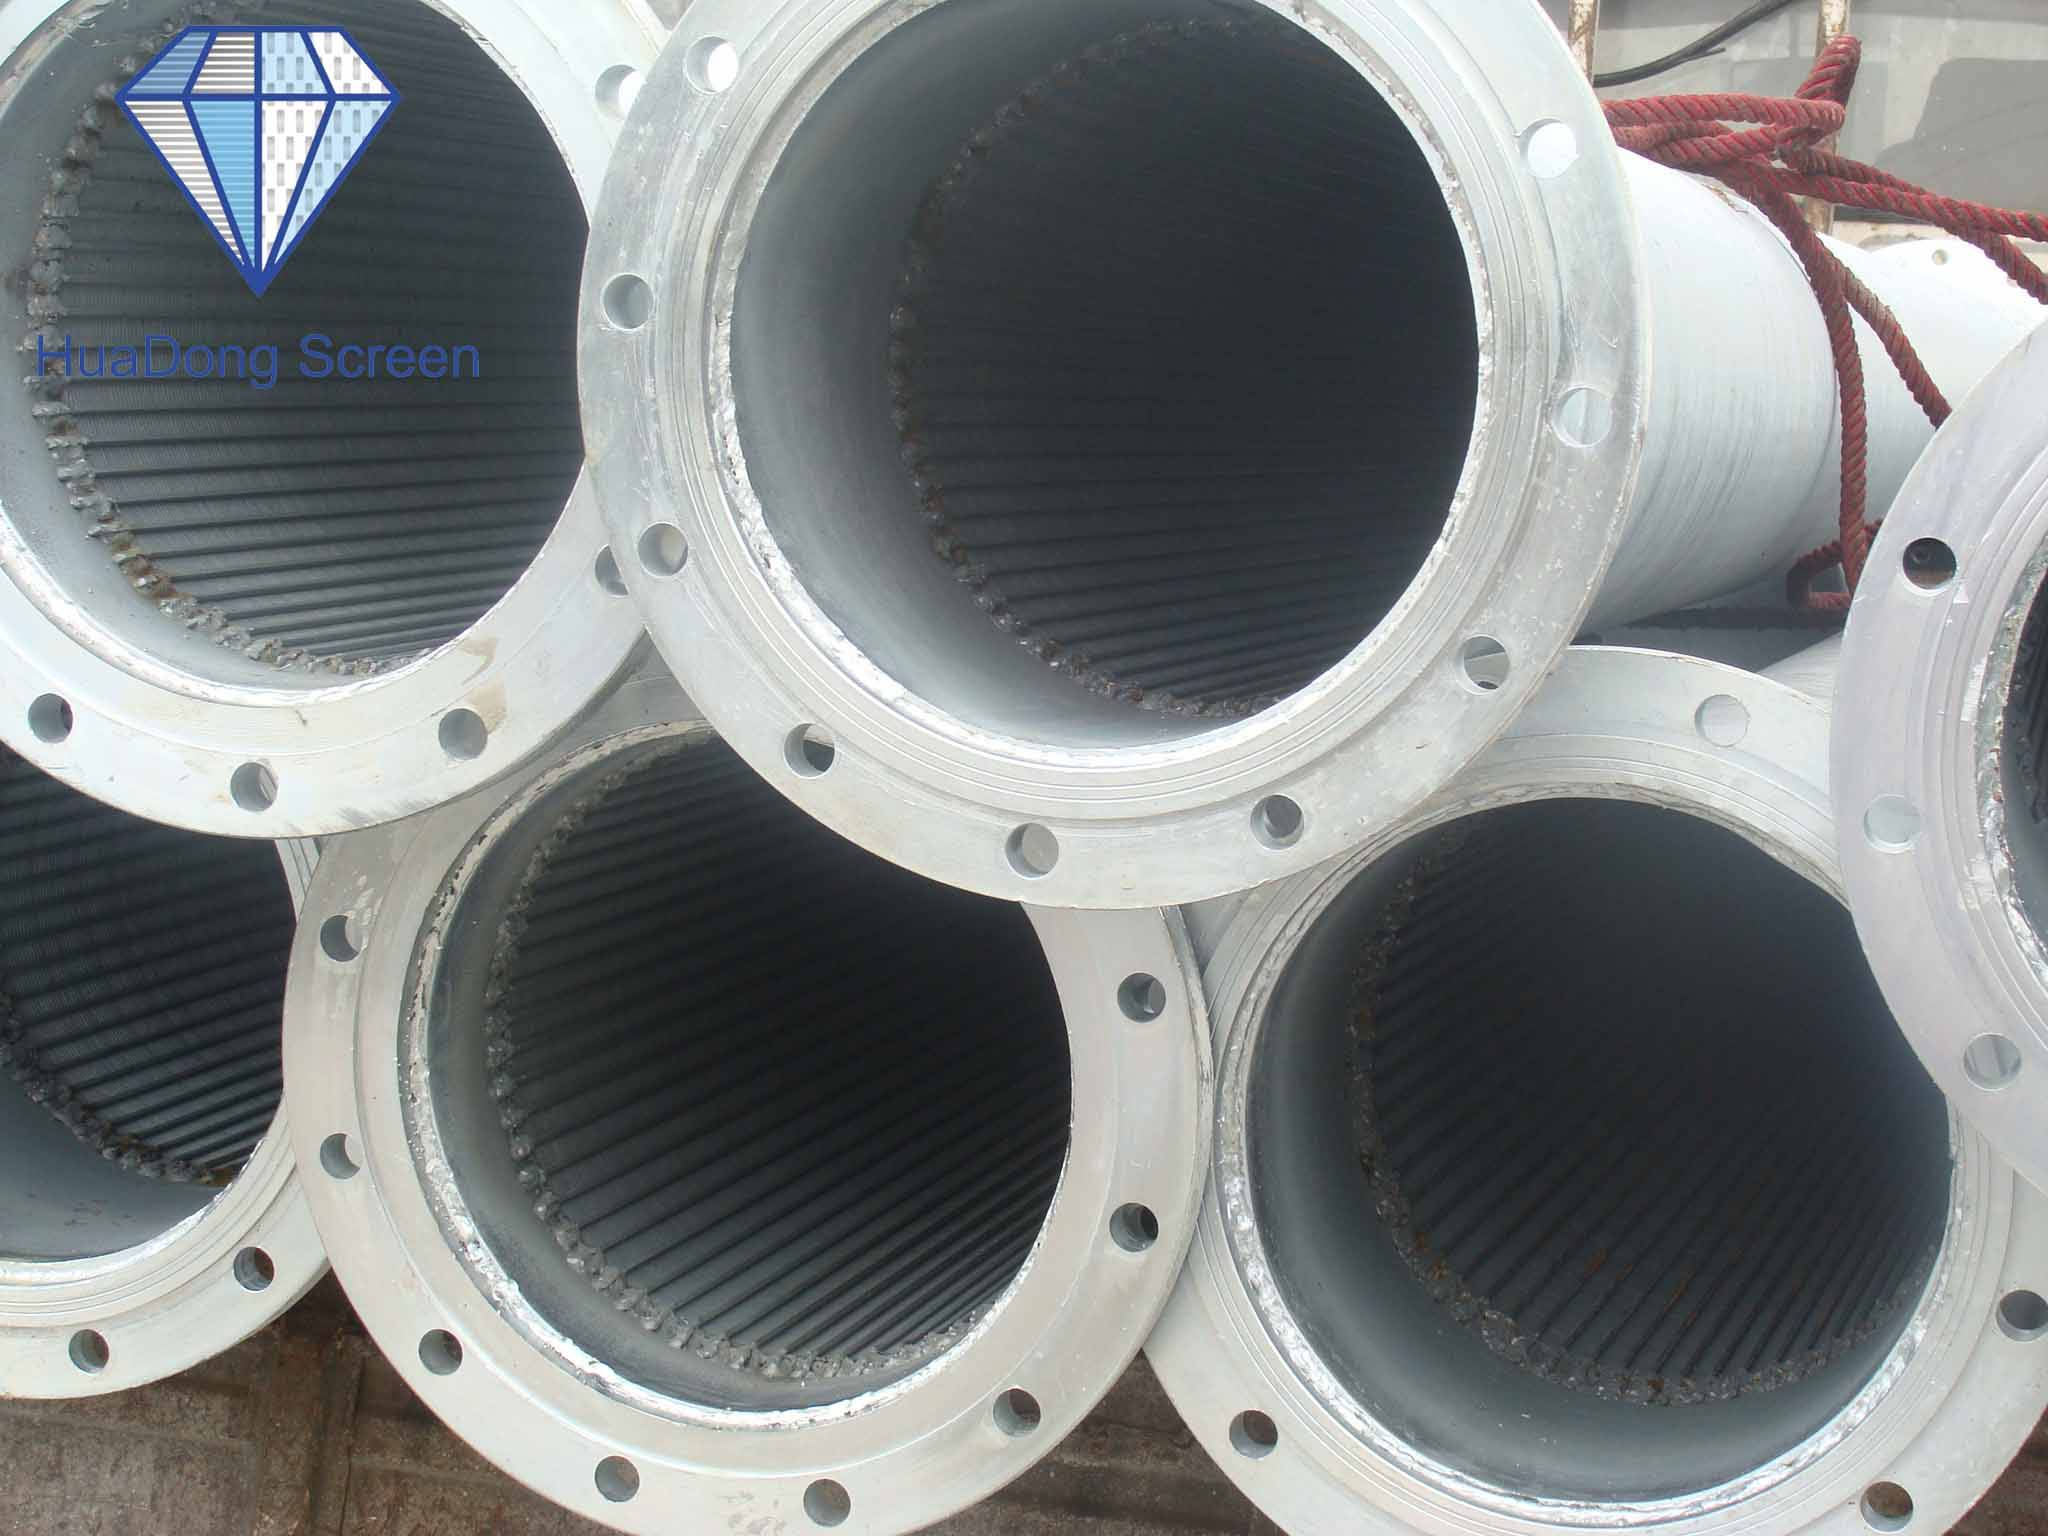 Sell Wedge wire screen pipes,well screen filters